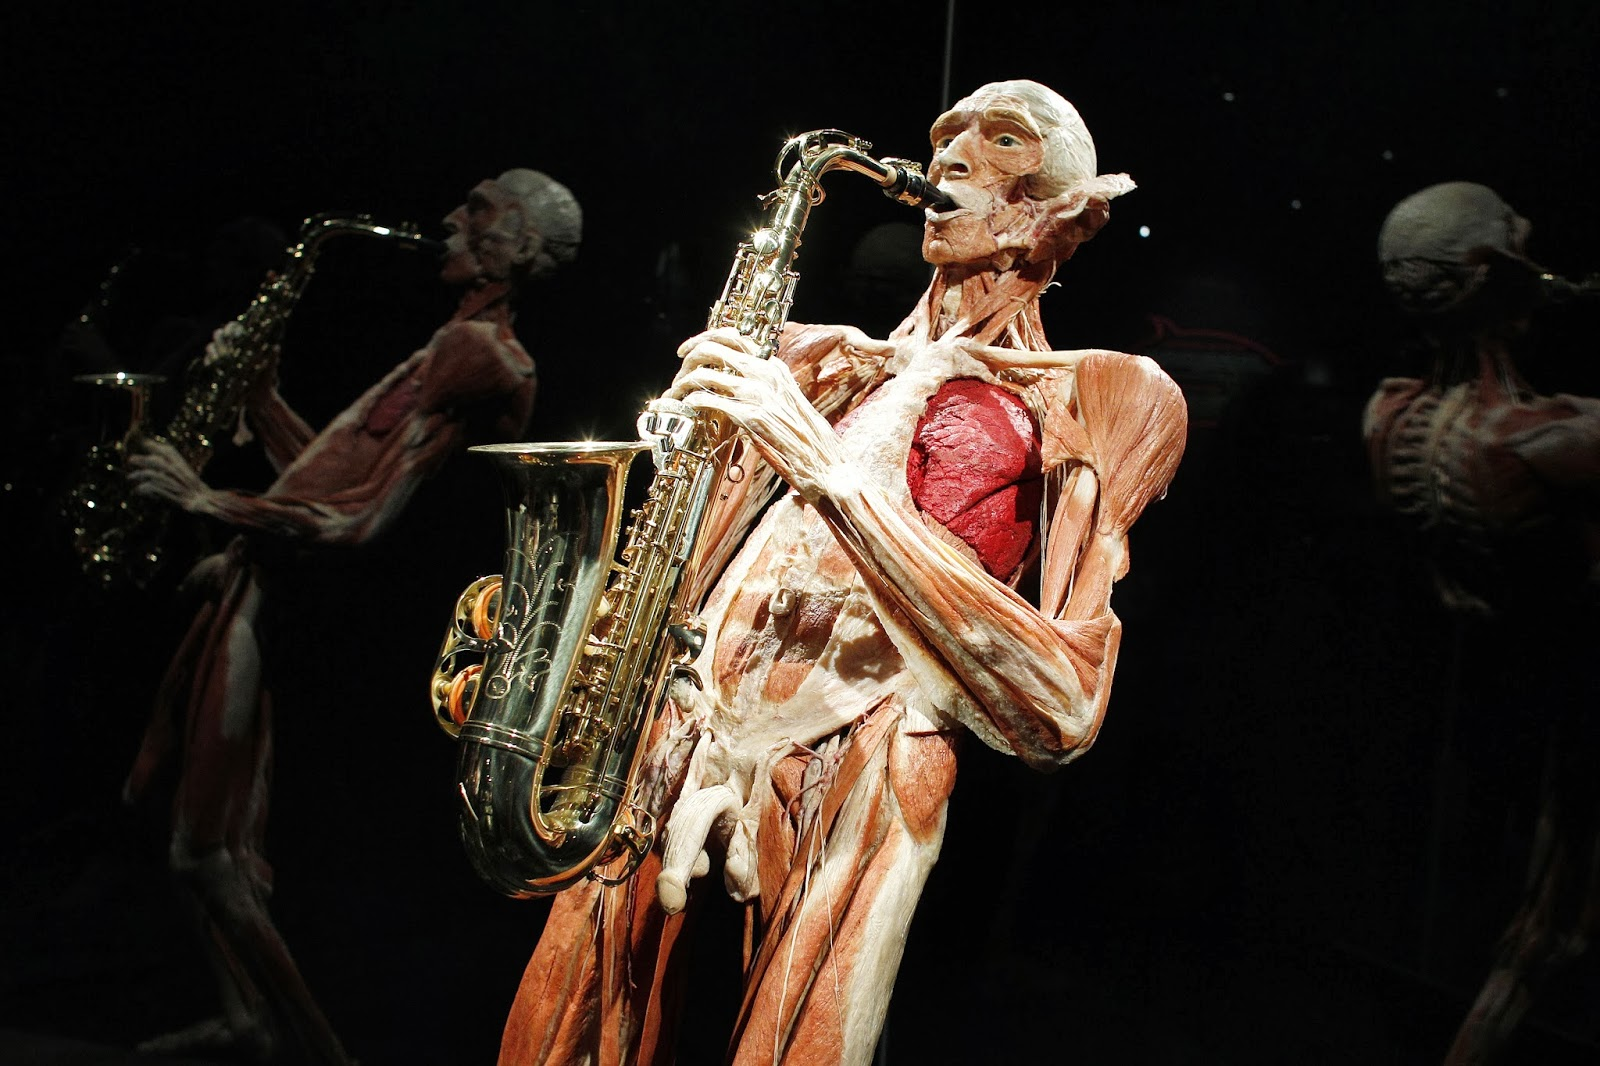 Body Worlds, Happiness, Project, Plastinated, Body, Human, Exhibition, Permanent, German,  Anatomist, Inventor, Technique, Gunther von Hagens, Amsterdam, Creation, Offbeat, Museum, Creator,